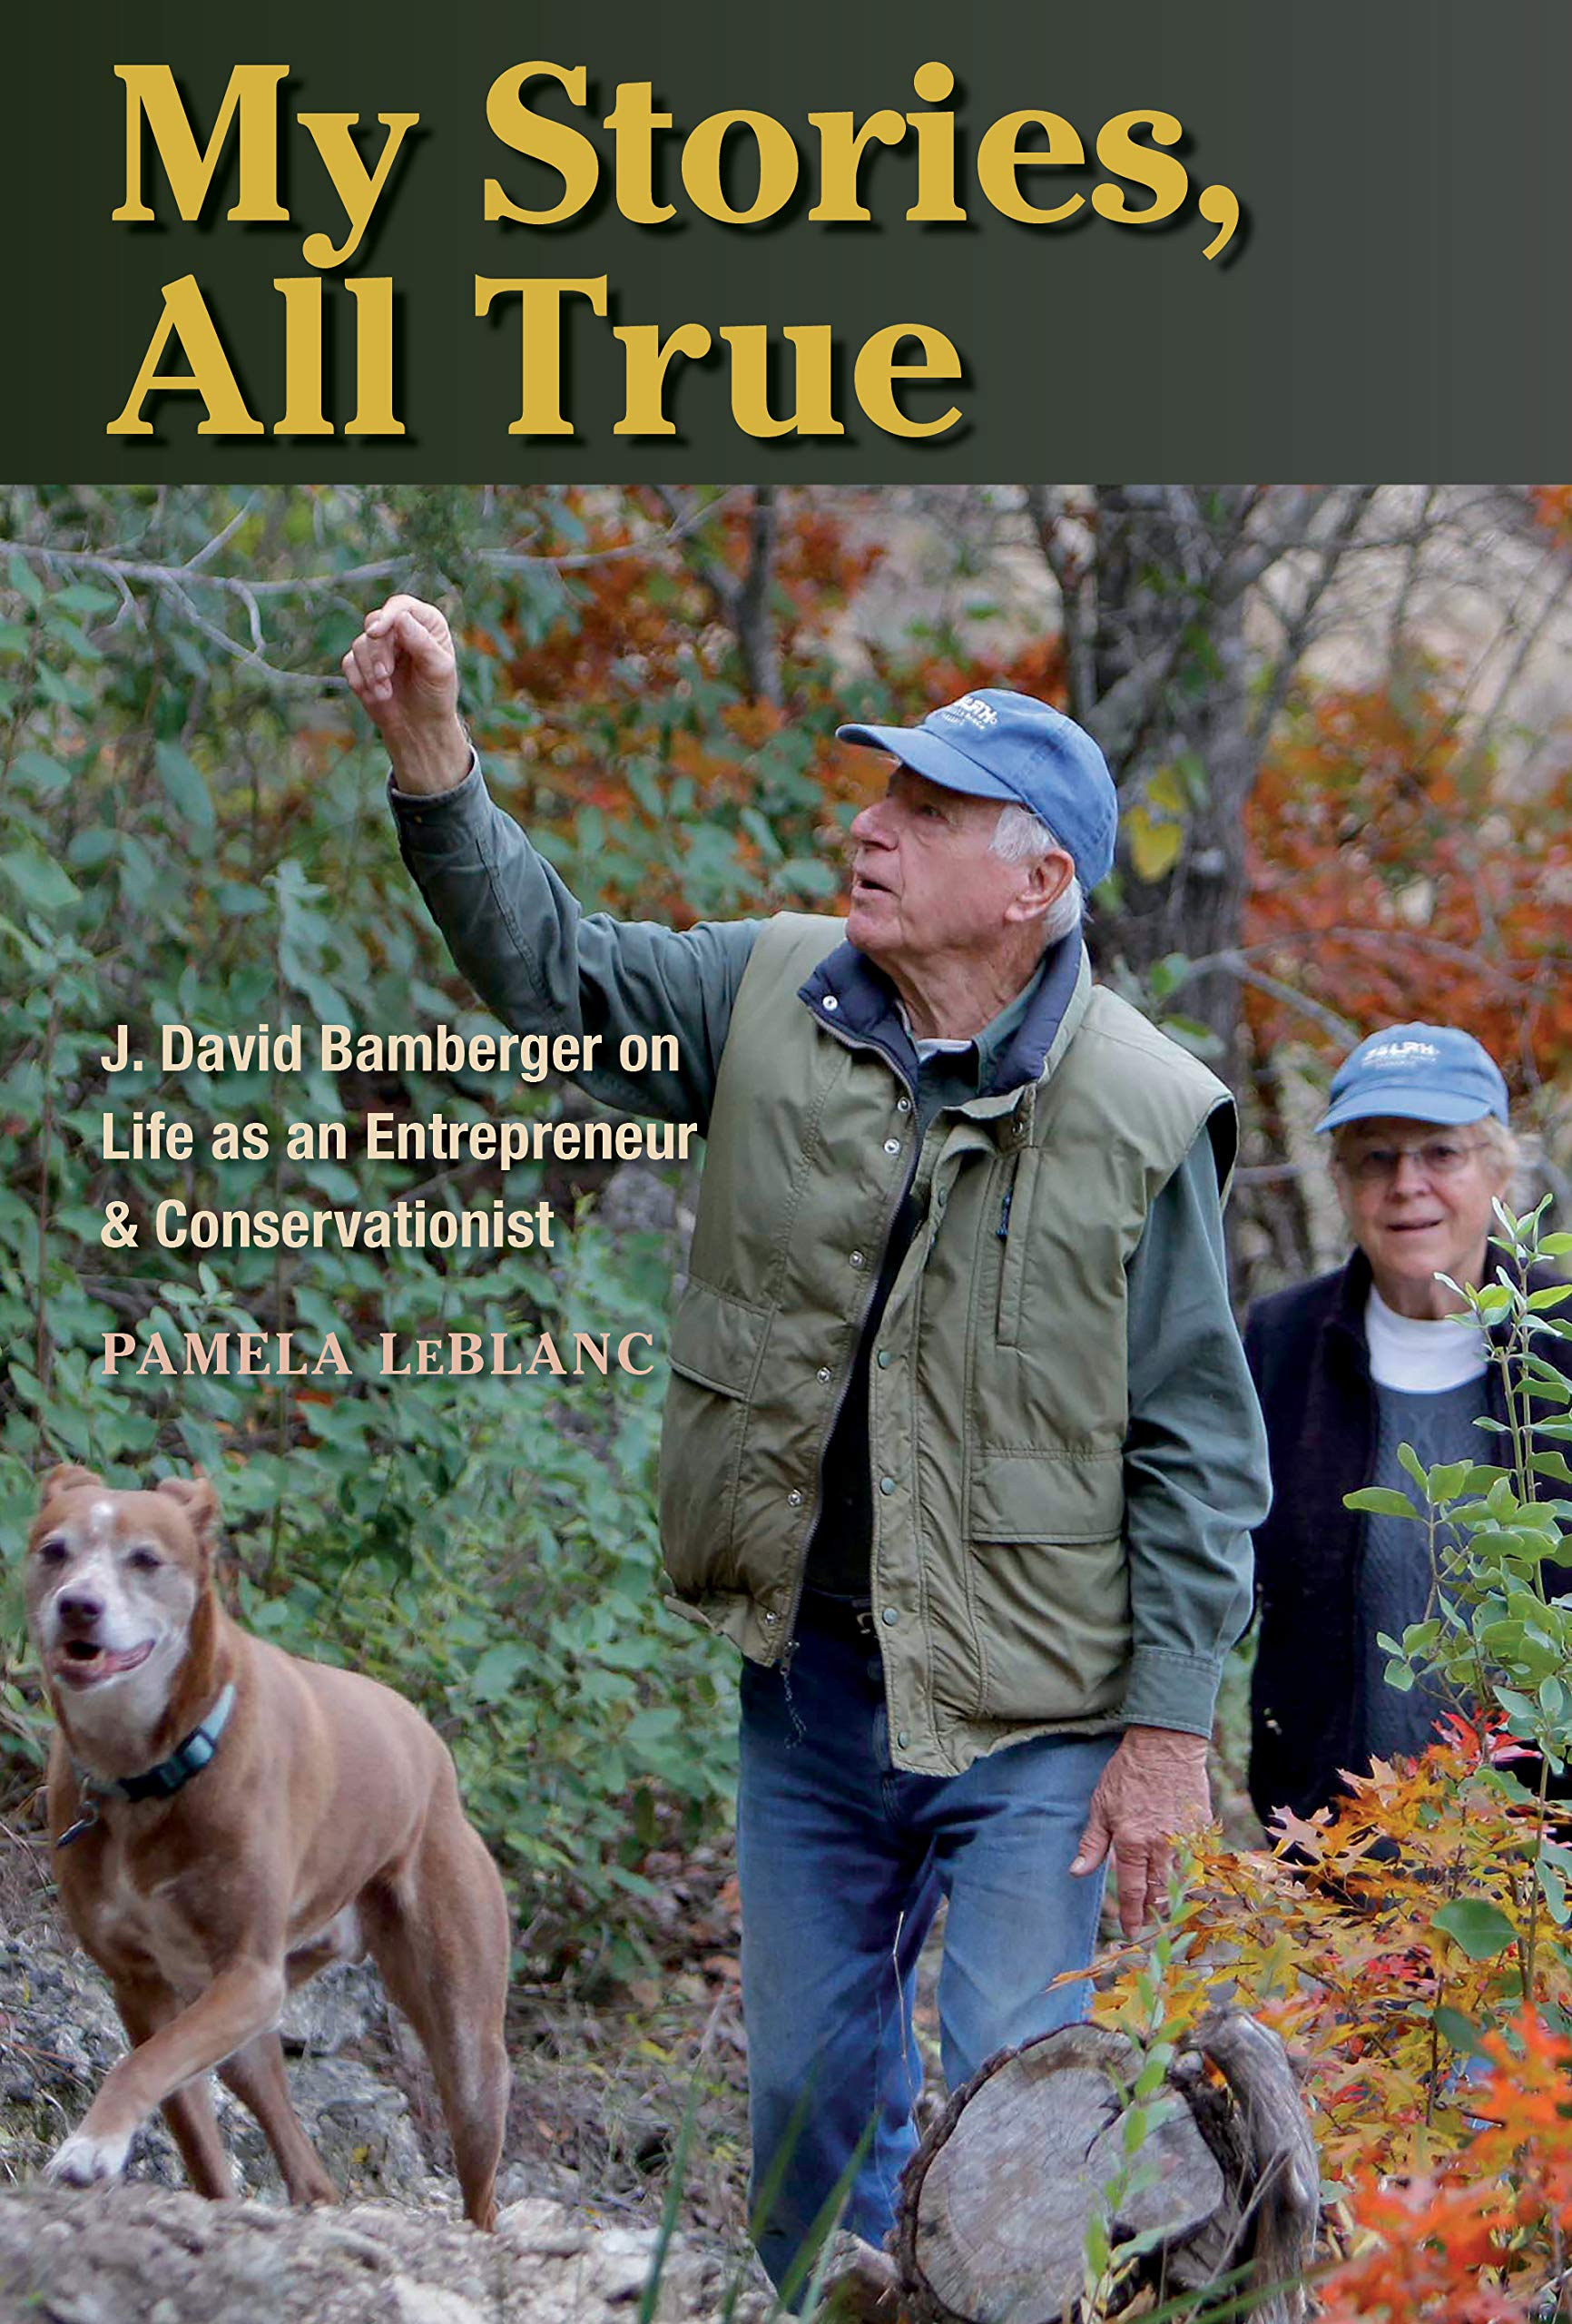 My Stories, All True: J. David Bamberger on Life as an Entrepreneur and Conservationist